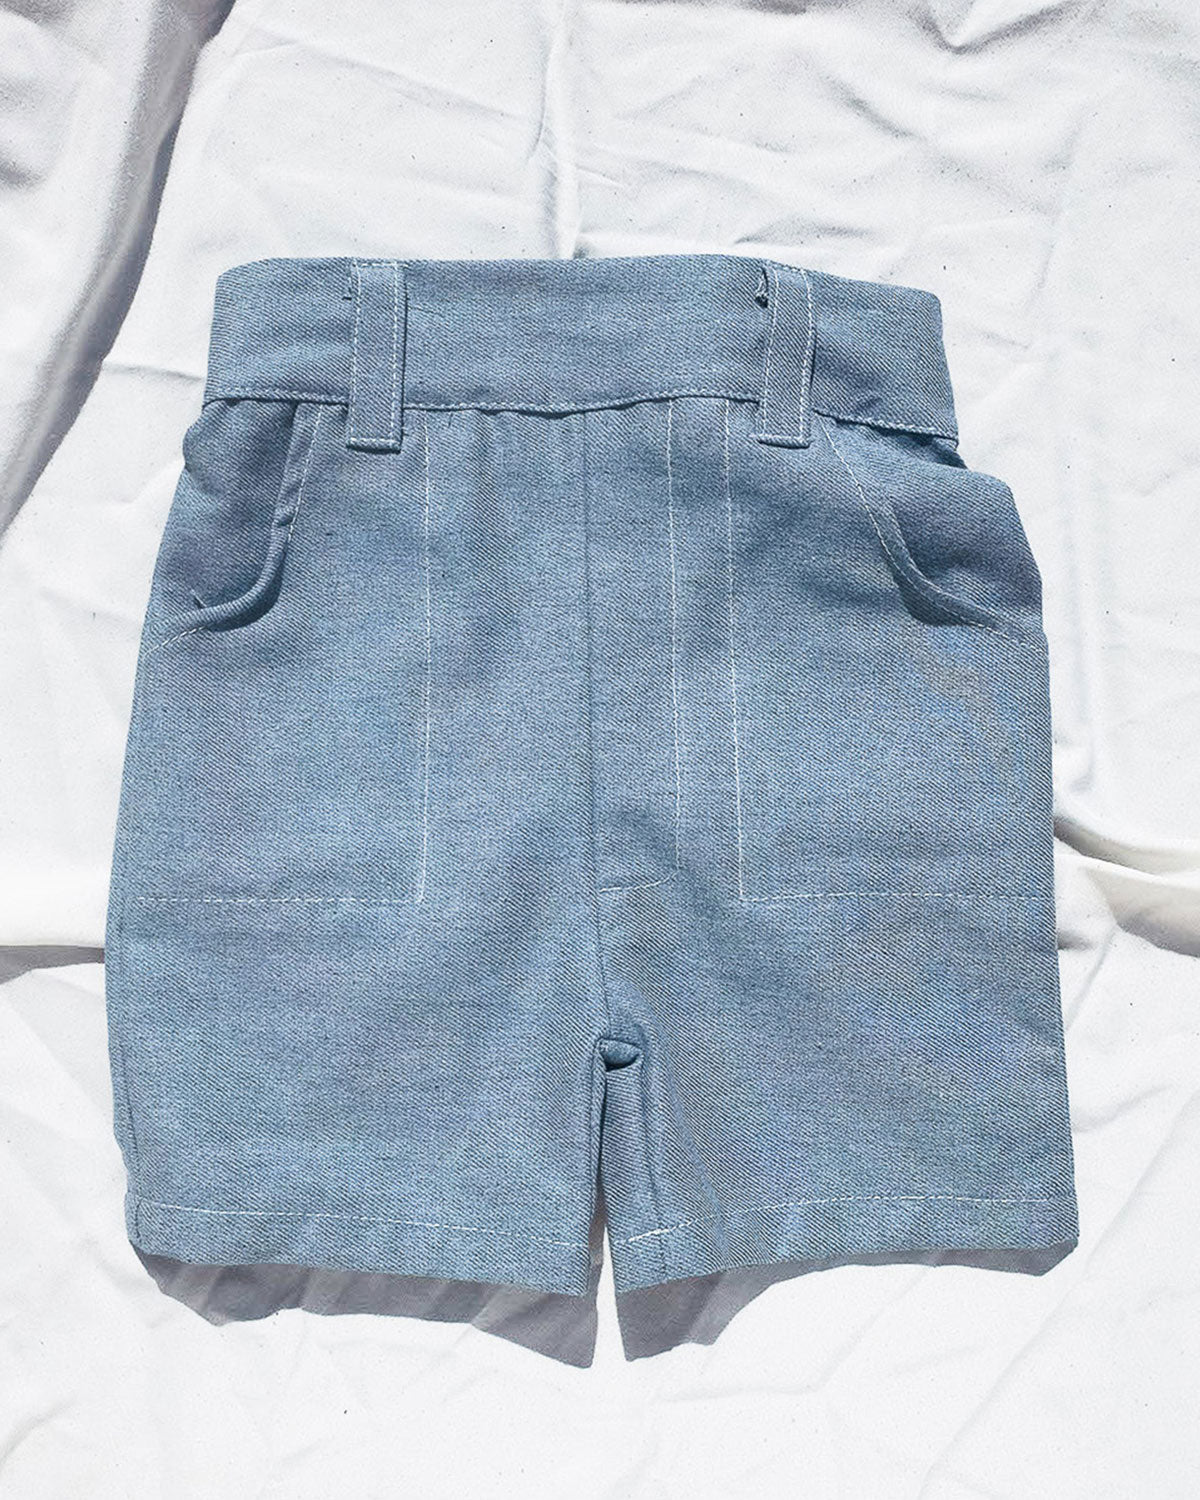 Denim short for toddlers and kids/ High waisted and 2 pockets.